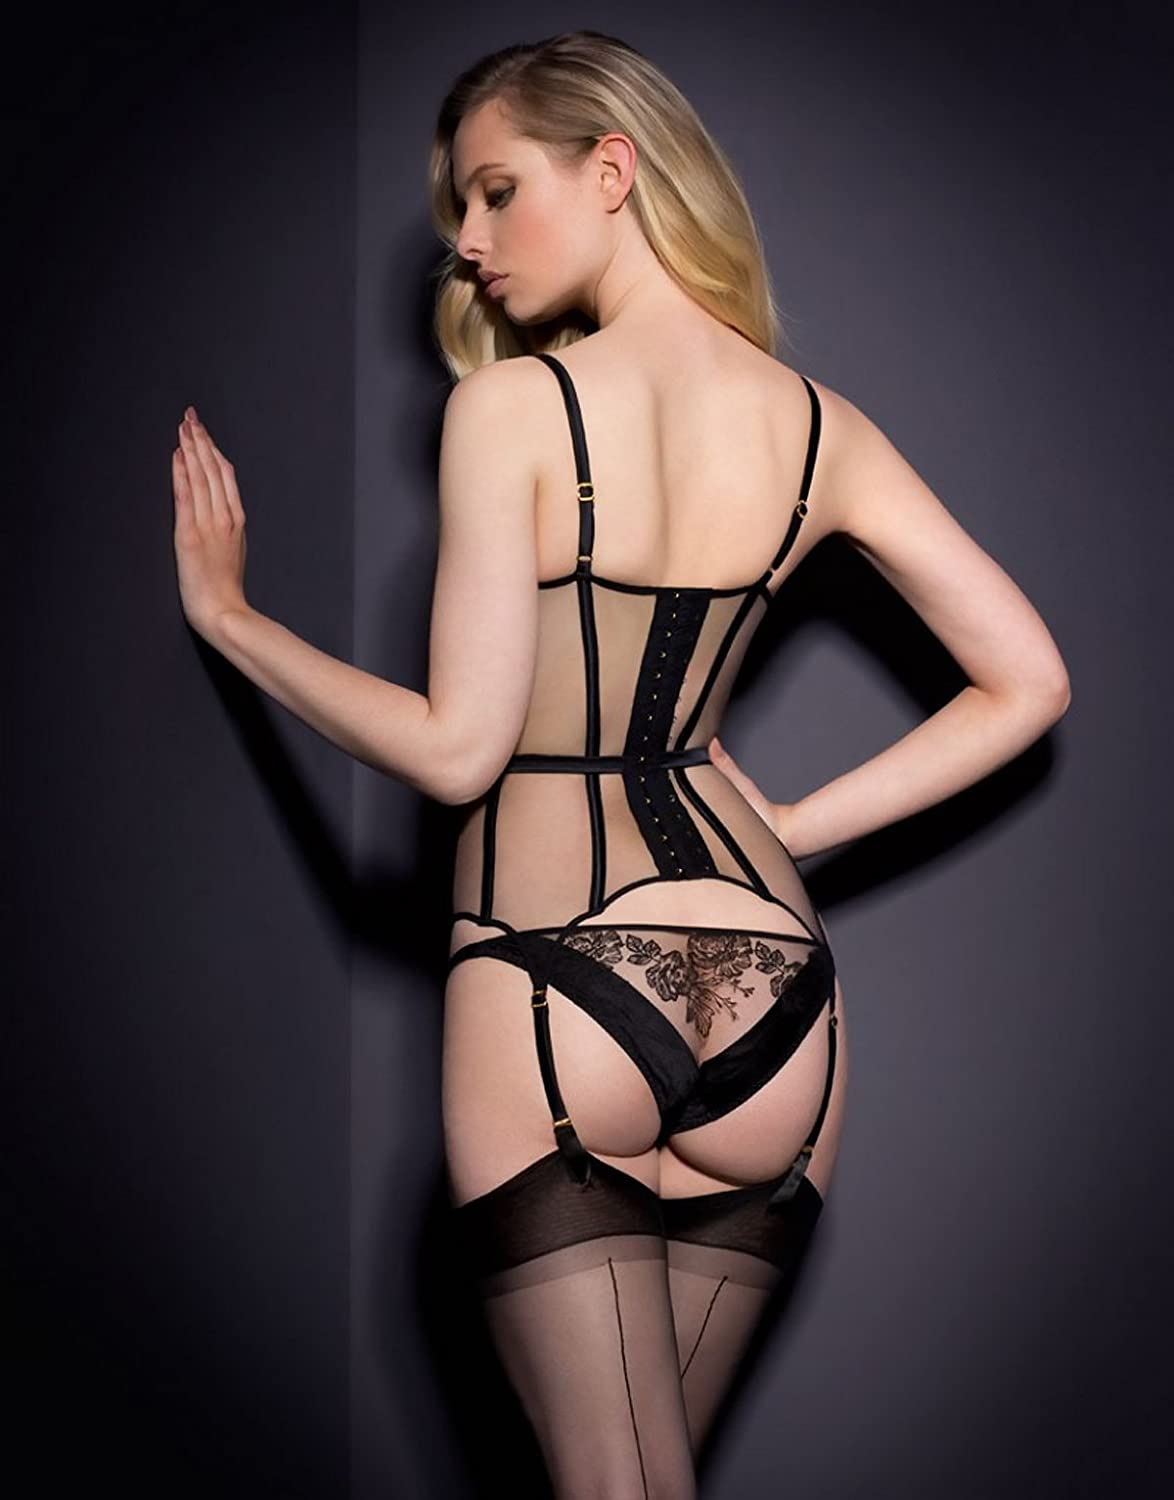 51d2671a35e3 Dioni Tabbers-Agent Provocateur Black Sheer Lingerie with Black Stockings  From Back Mid Photo 8 inch x 10 inch PHOTOGRAPH at Amazon's Entertainment  ...